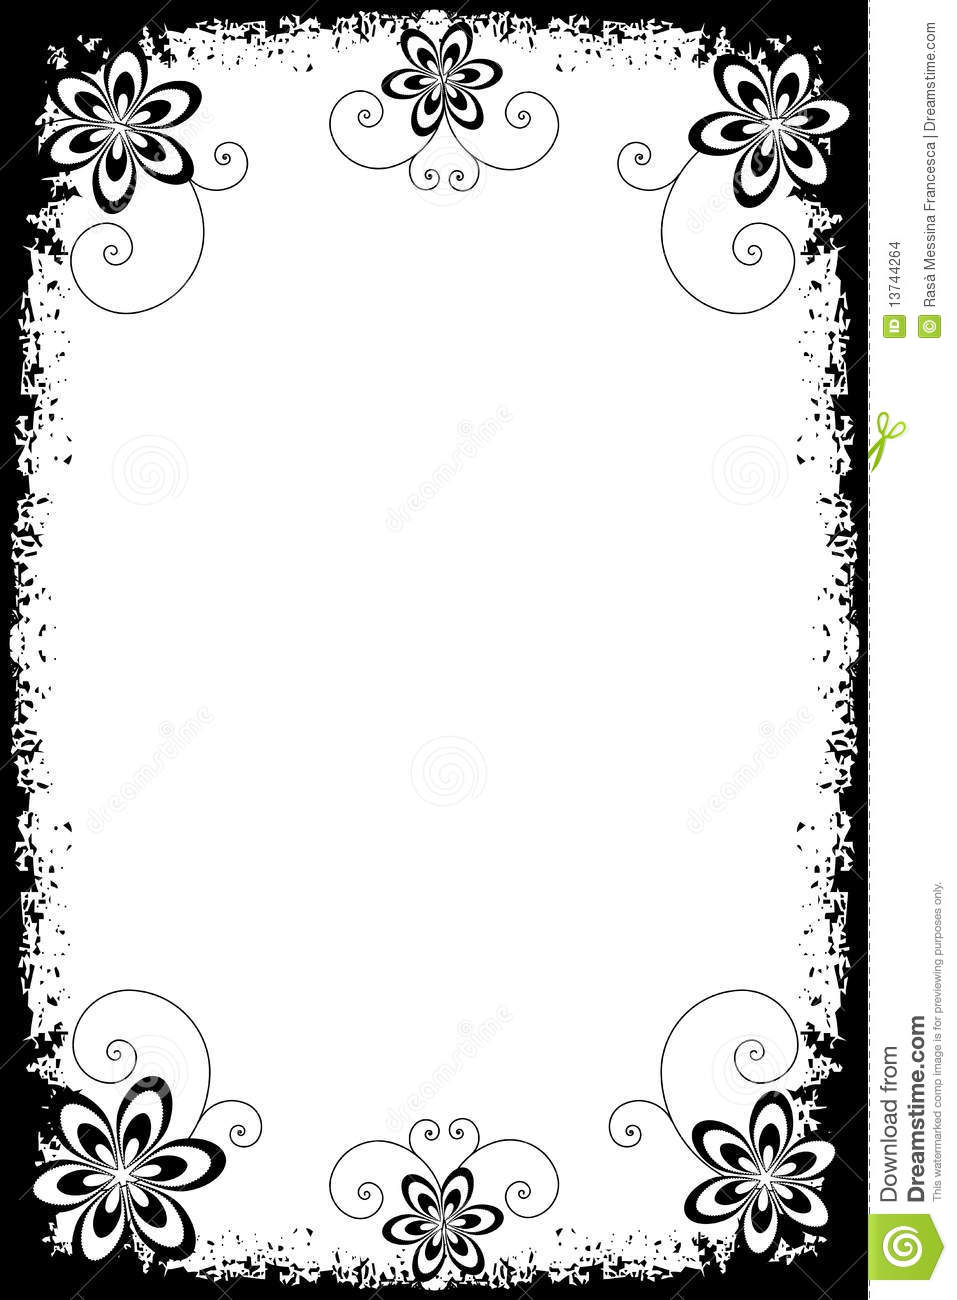 Border Designs In Black And White Borders